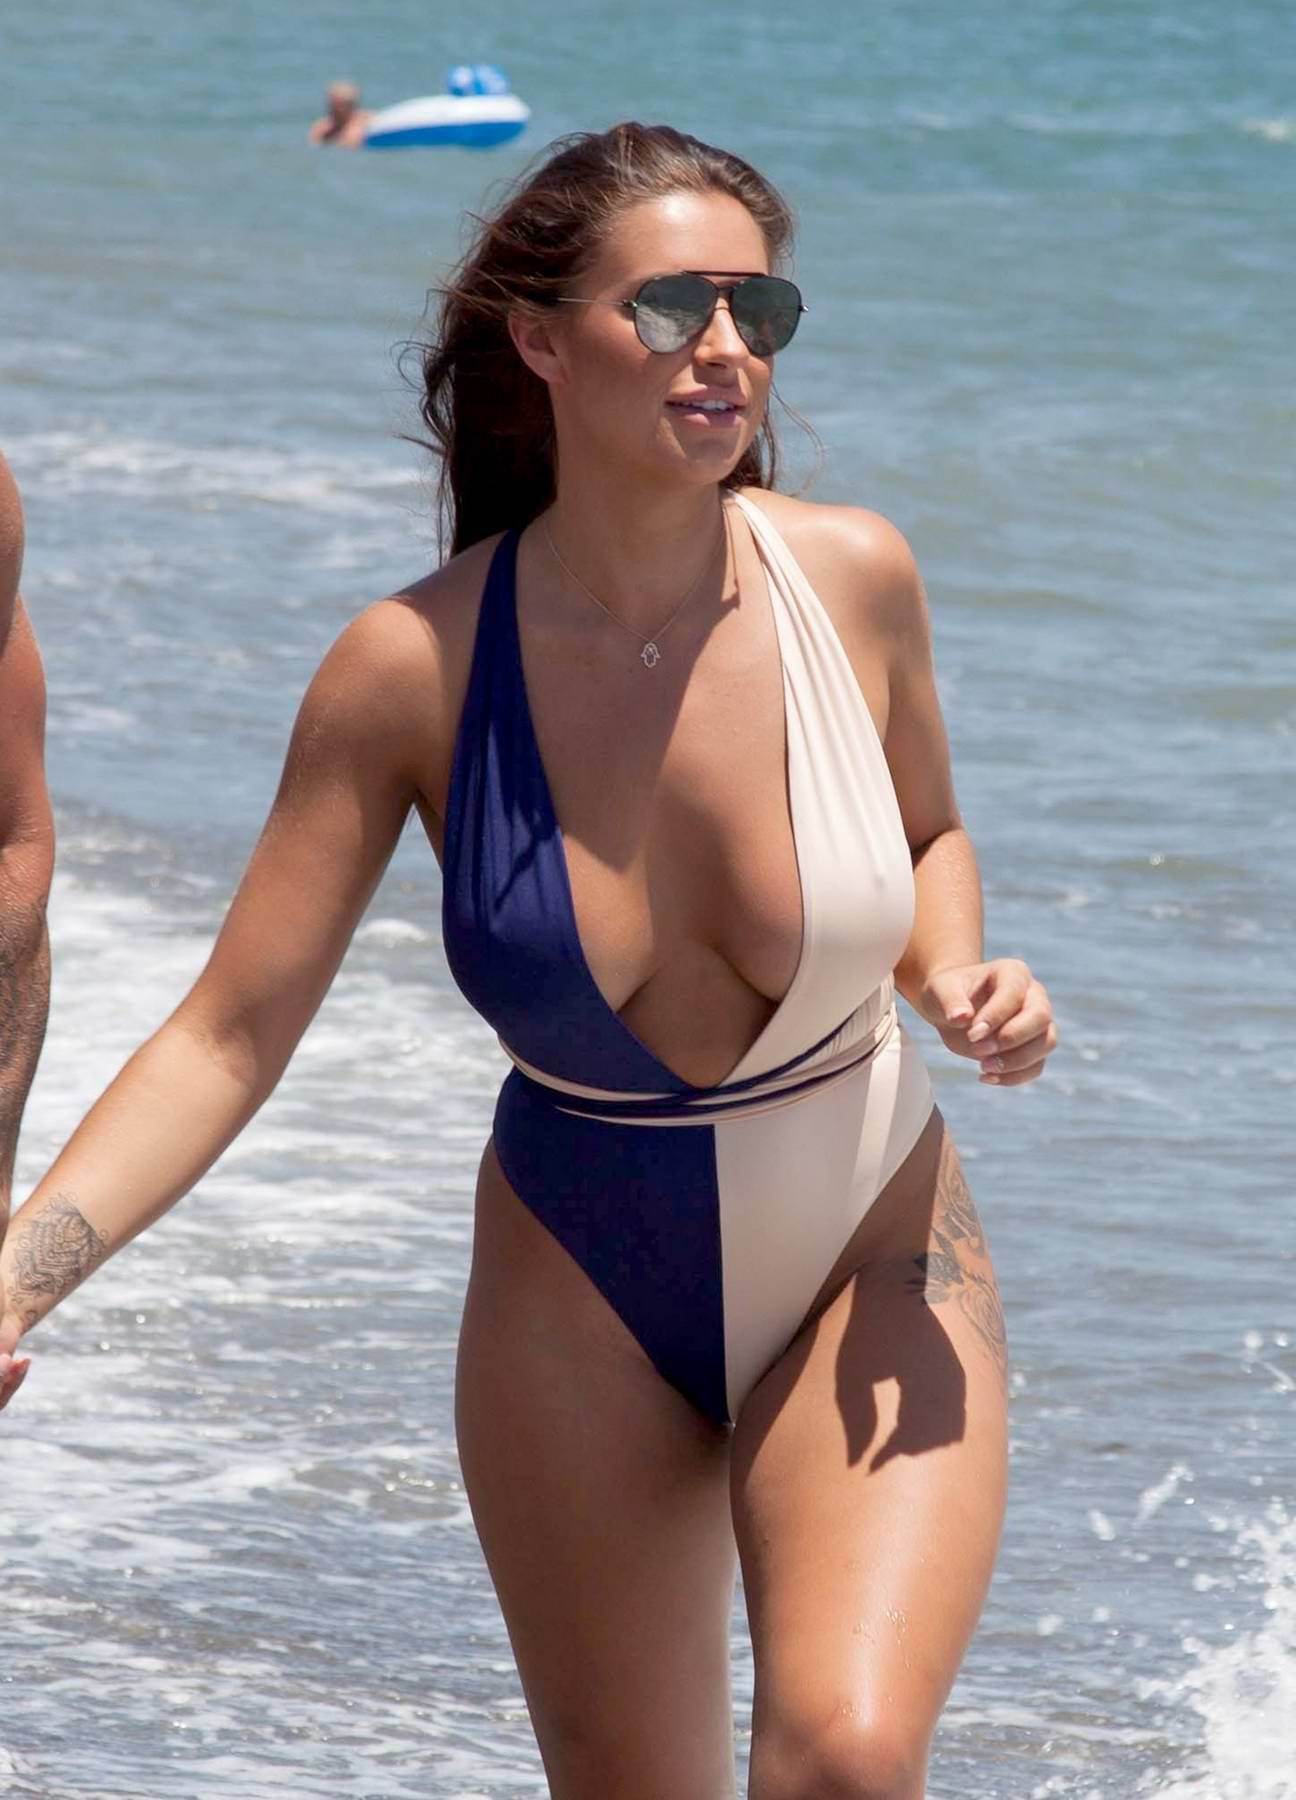 Jessica Shears in a Swimsuit enjoying the Beach in Spain